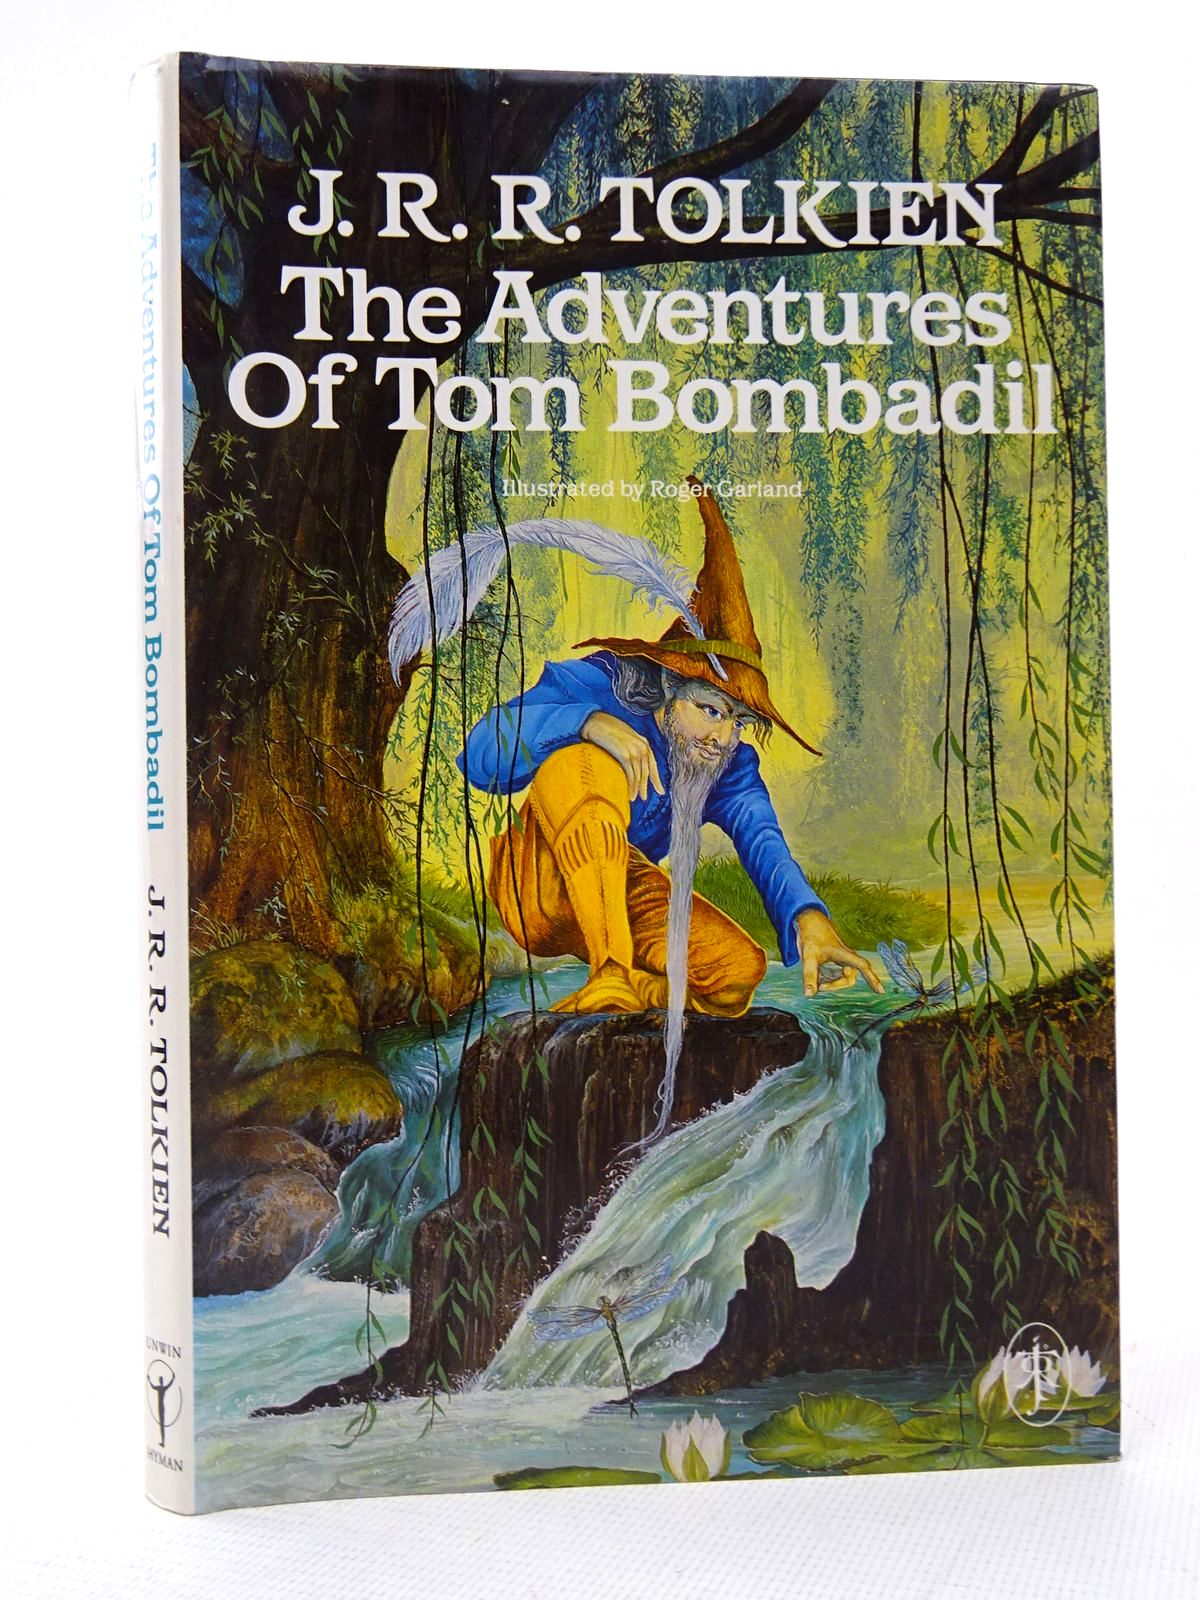 Photo of THE ADVENTURES OF TOM BOMBADIL AND OTHER VERSES FROM THE RED BOOK written by Tolkien, J.R.R. illustrated by Garland, Roger published by Unwin Paperbacks (STOCK CODE: 1816938)  for sale by Stella & Rose's Books